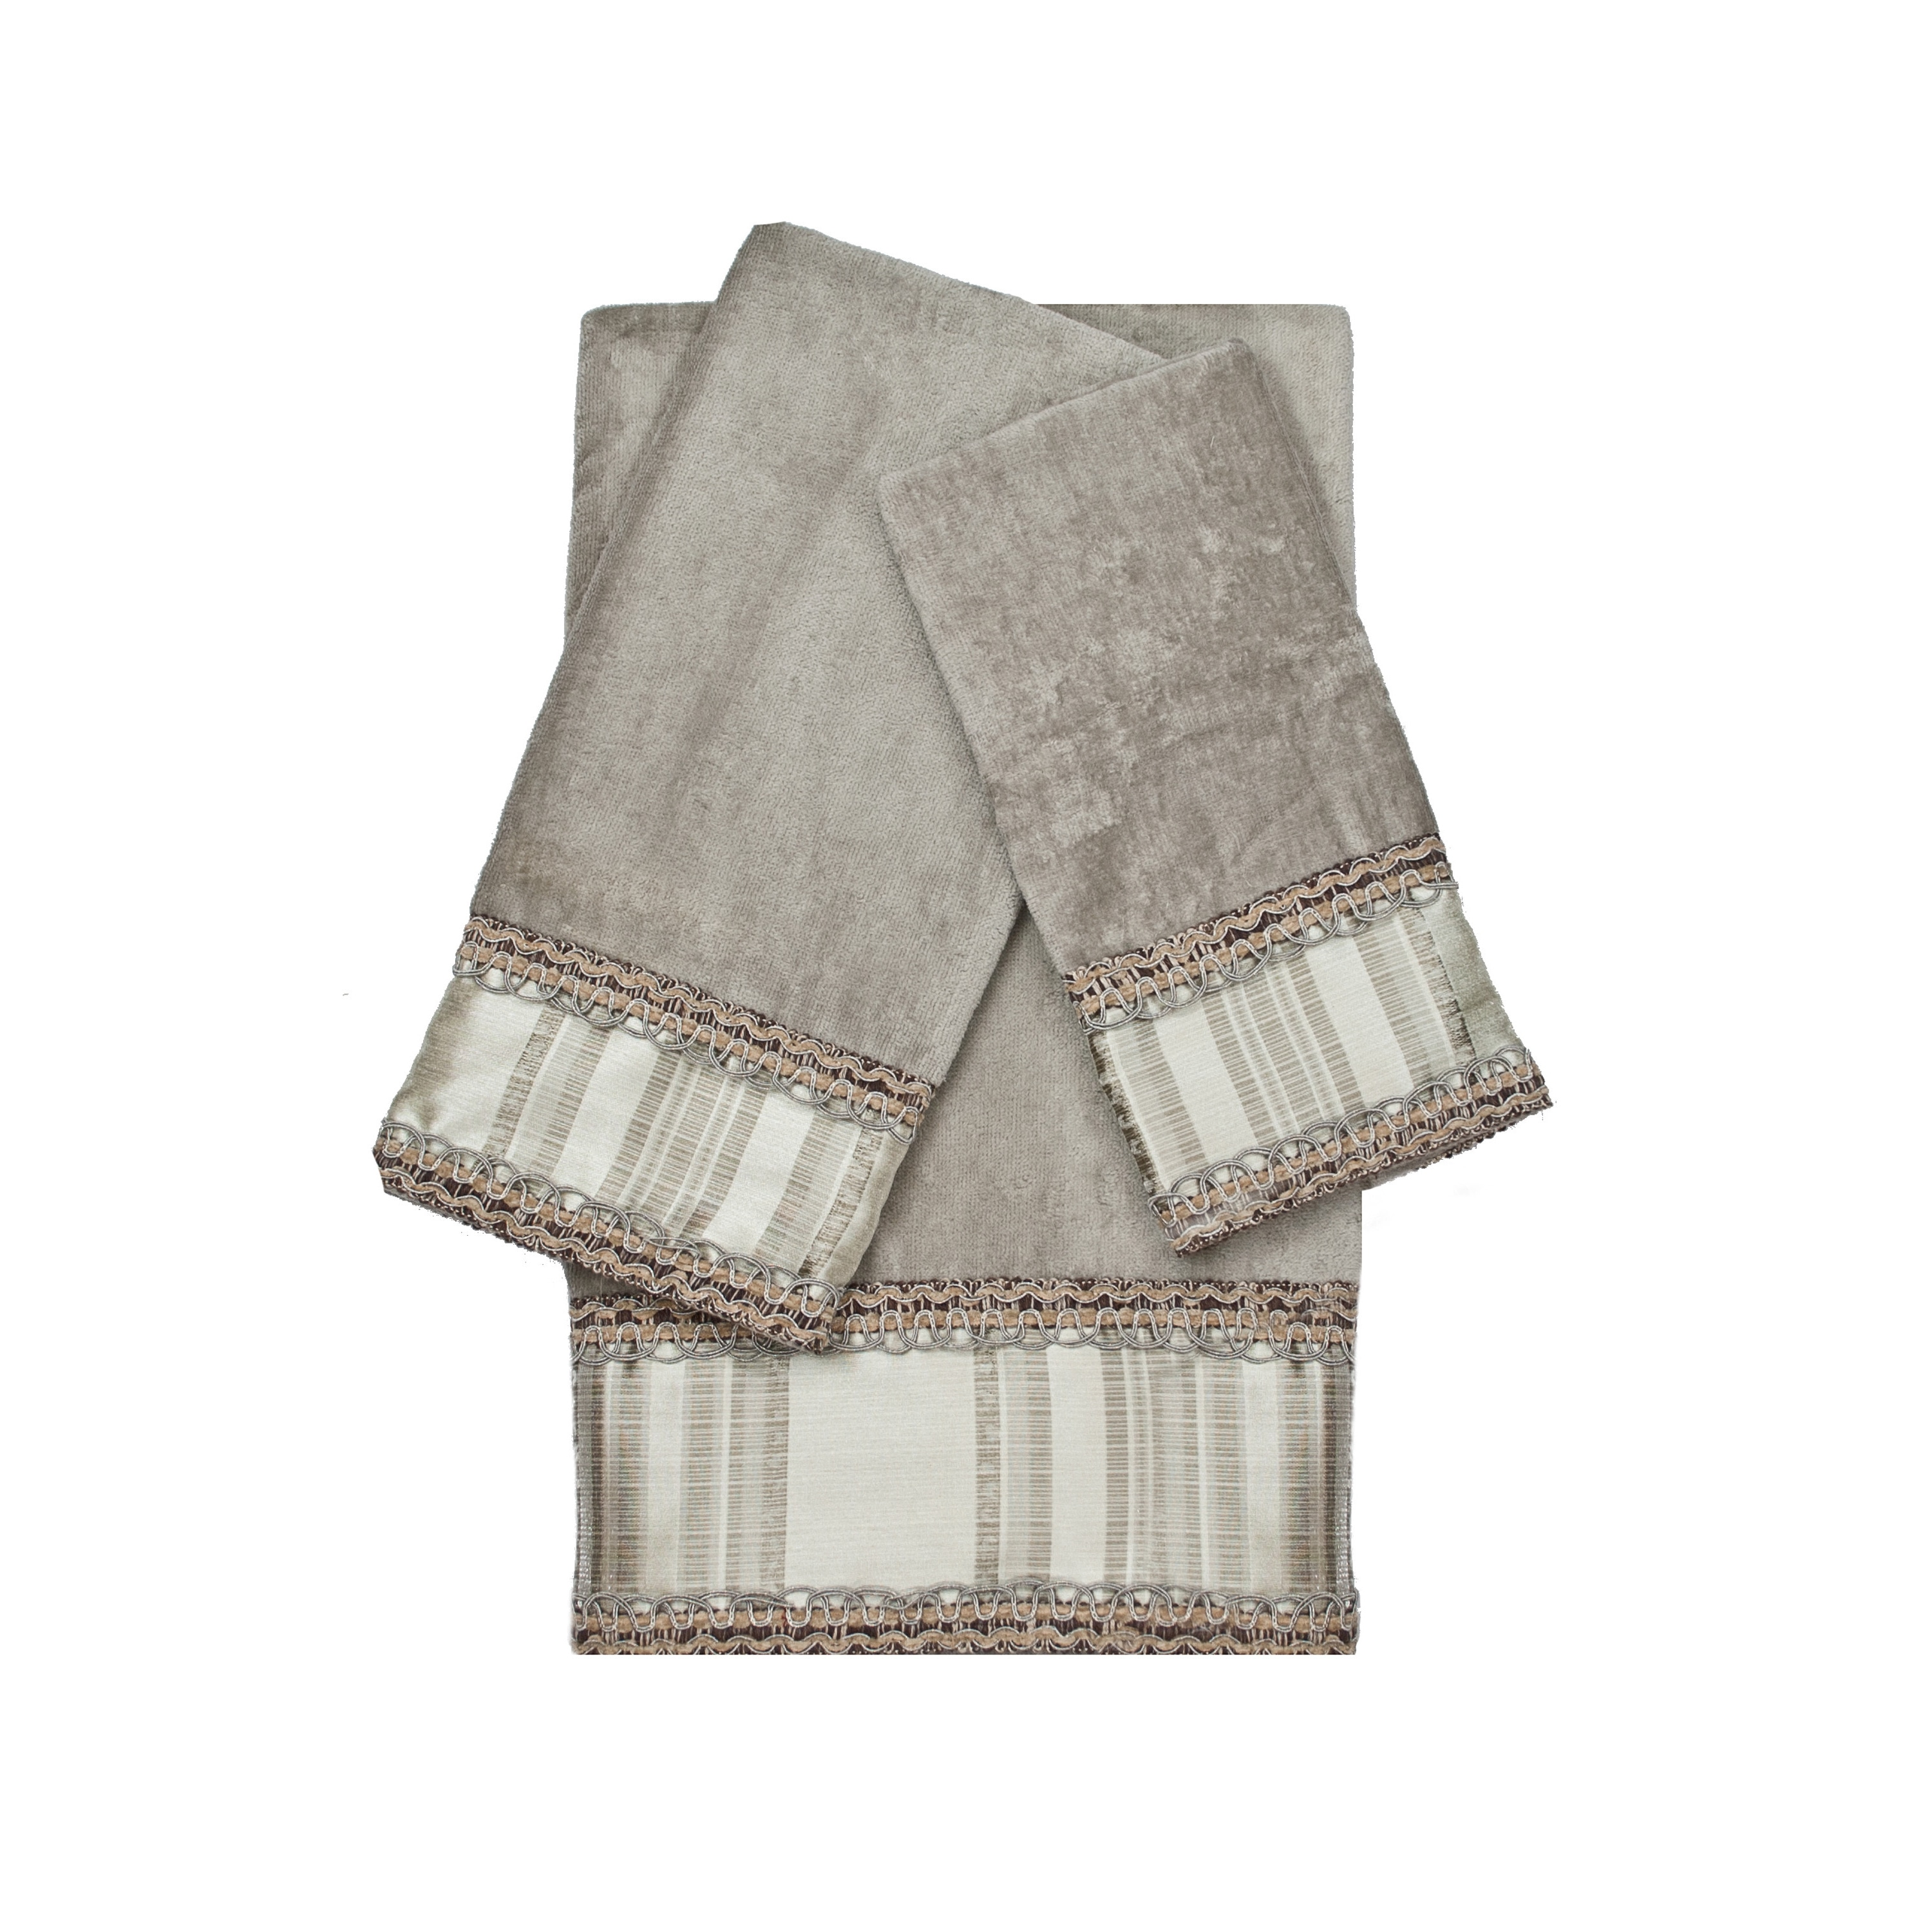 Sherry Kline  Norwood Stripe Grey 3-piece Decorative Embellished Towel Set